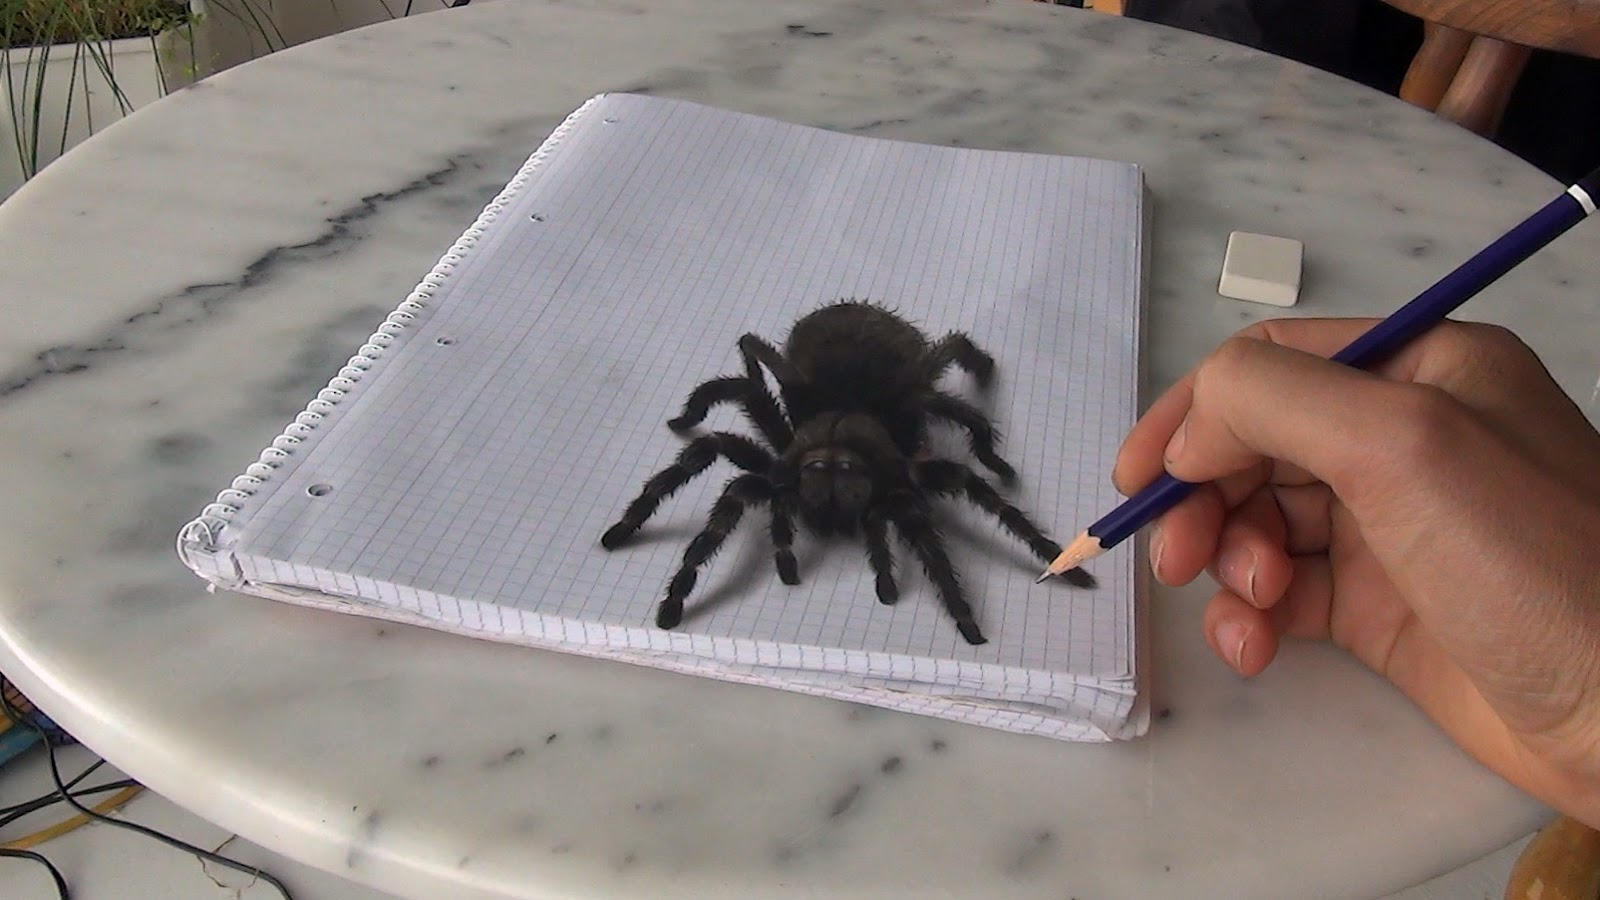 11-Spider-Tarantula-Stefan-Pabst-3D-Optical-Illusions-Drawings-and-Paintings-www-designstack-co